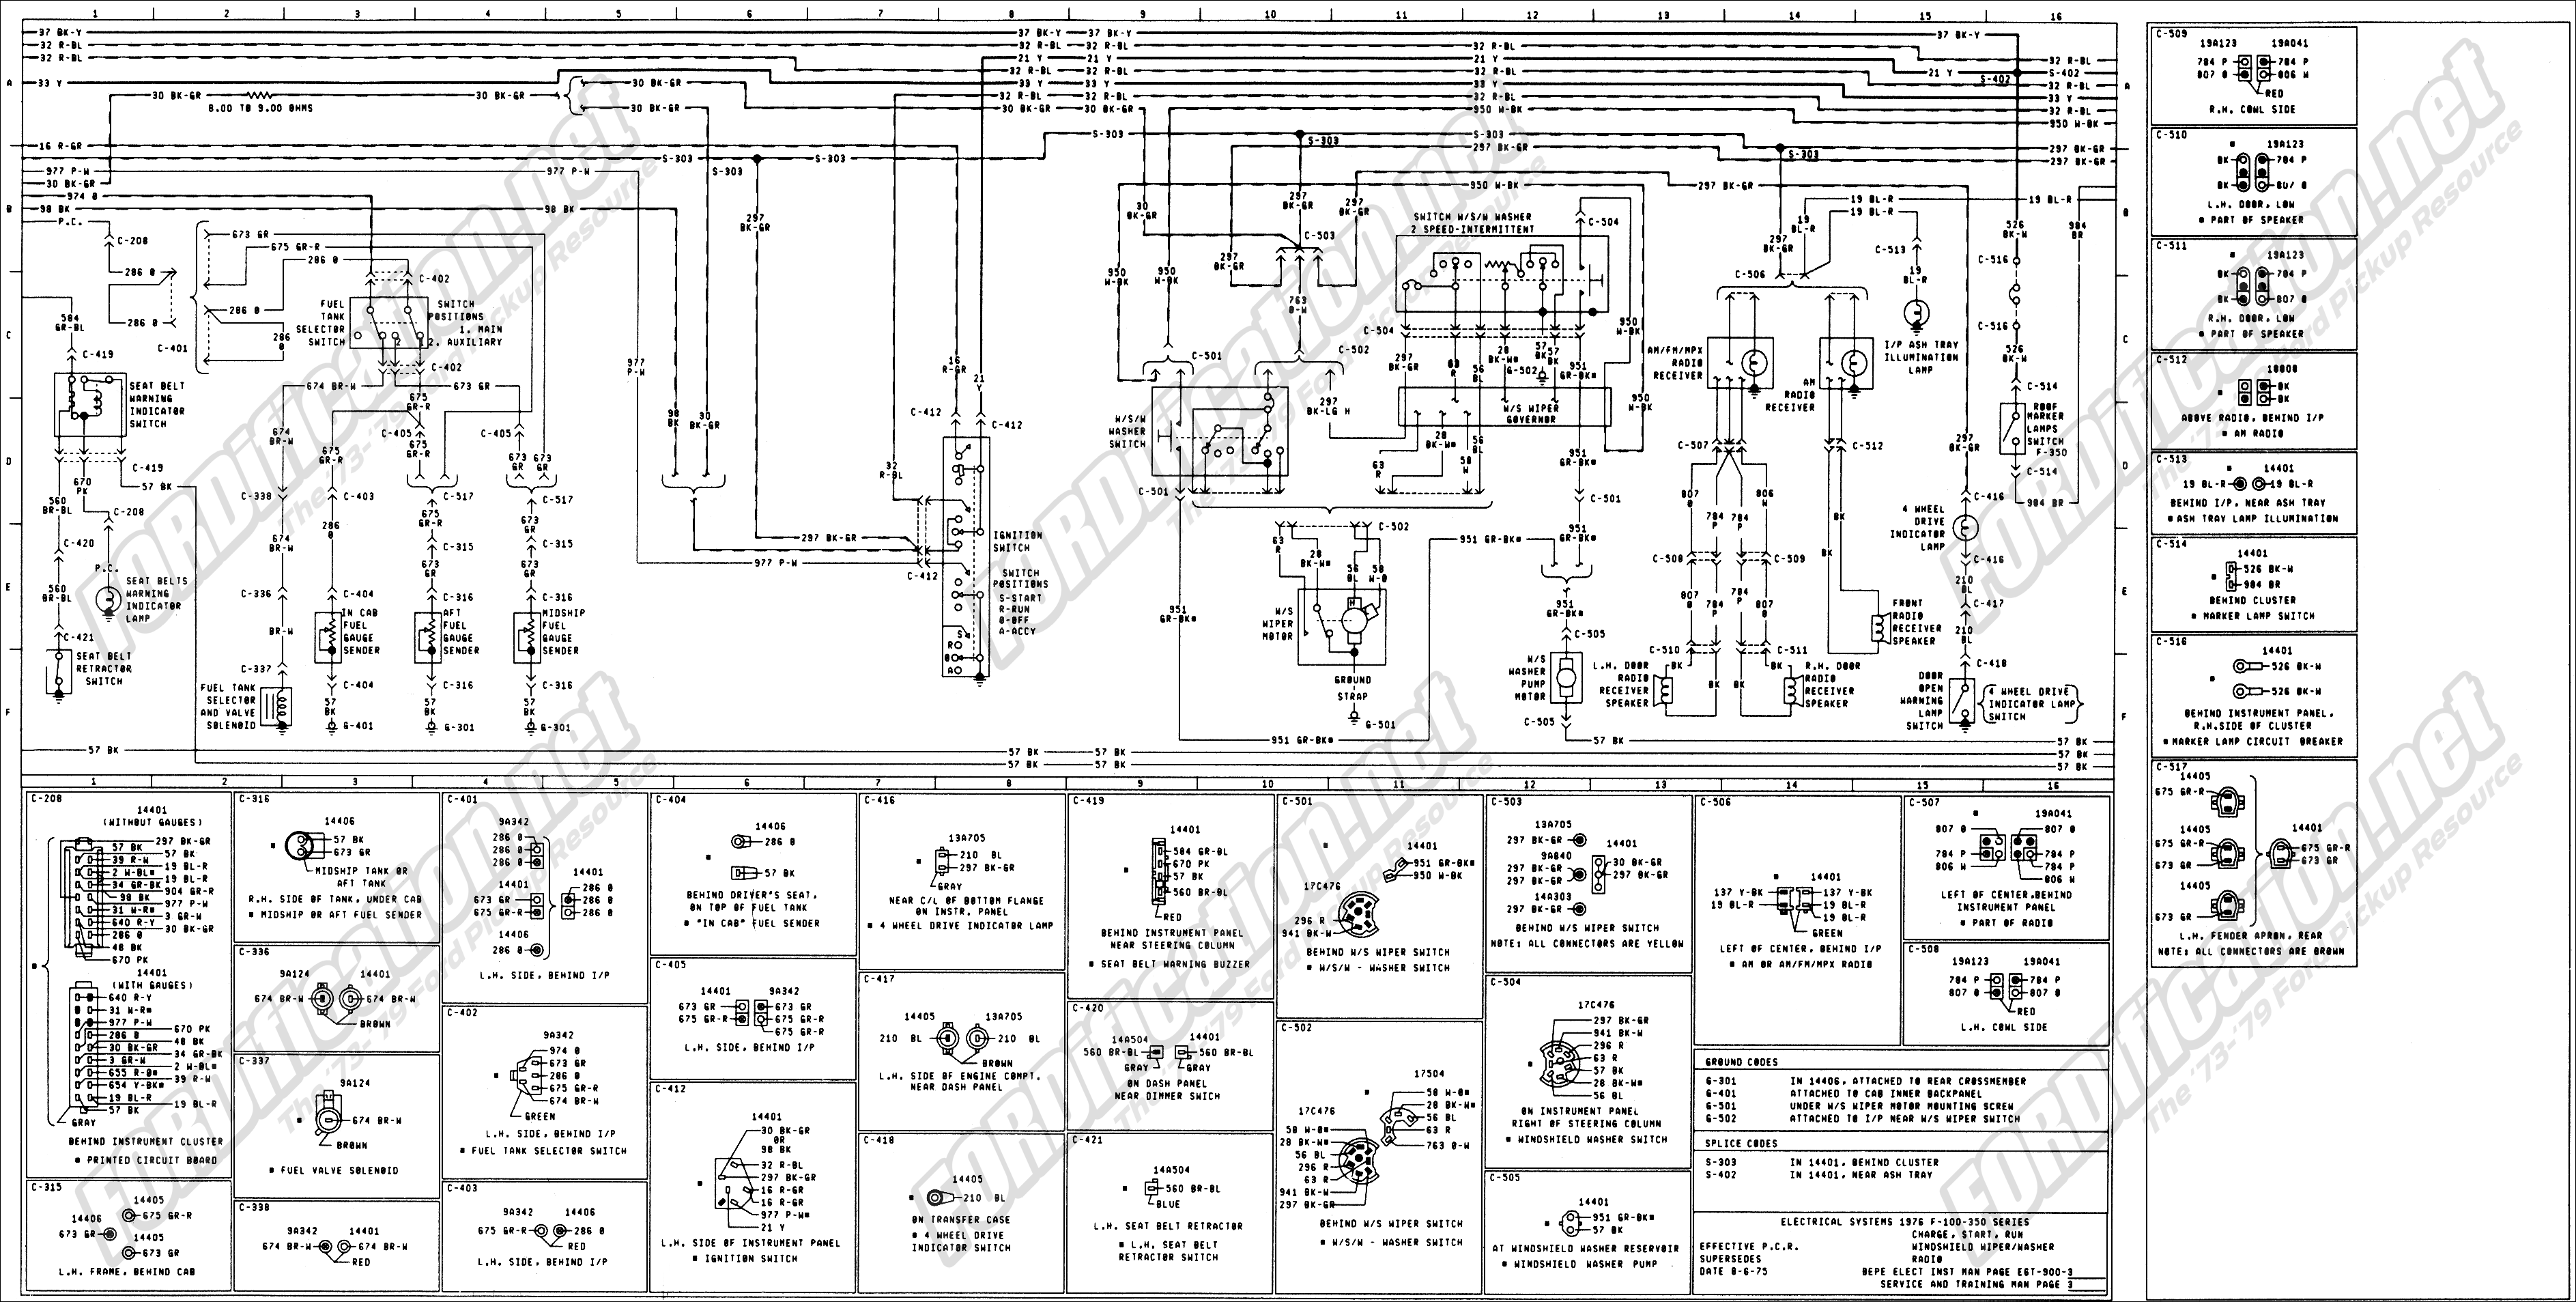 wiring_76master_3of9 ford ranger & bronco ii electrical diagrams at the ranger station 1979 ford truck fuse box diagram at pacquiaovsvargaslive.co